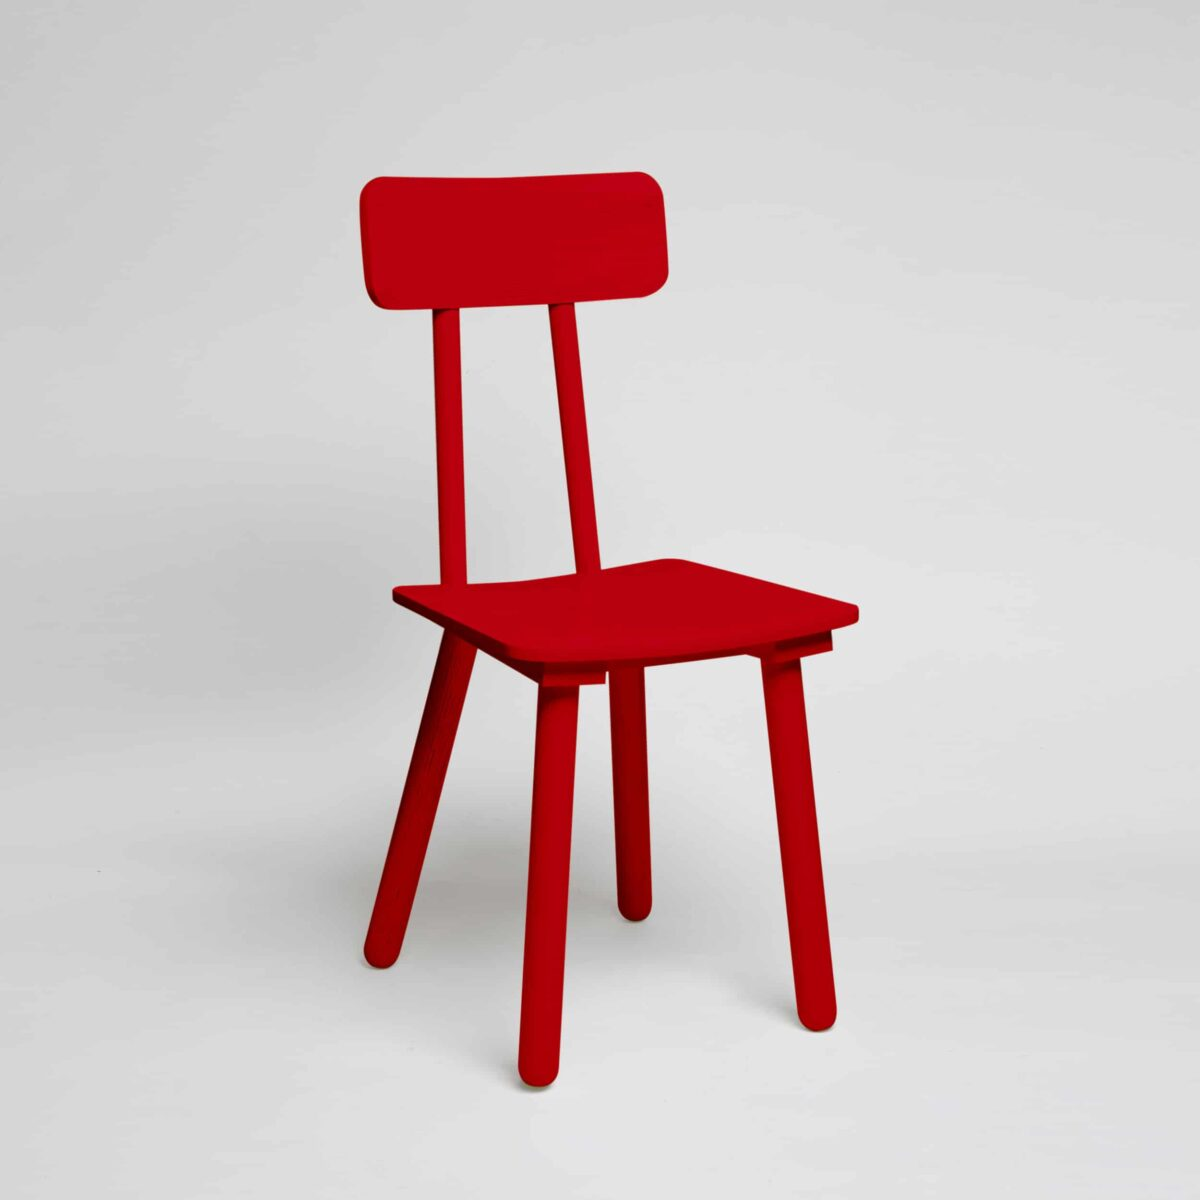 another-chair-red-another-country-001